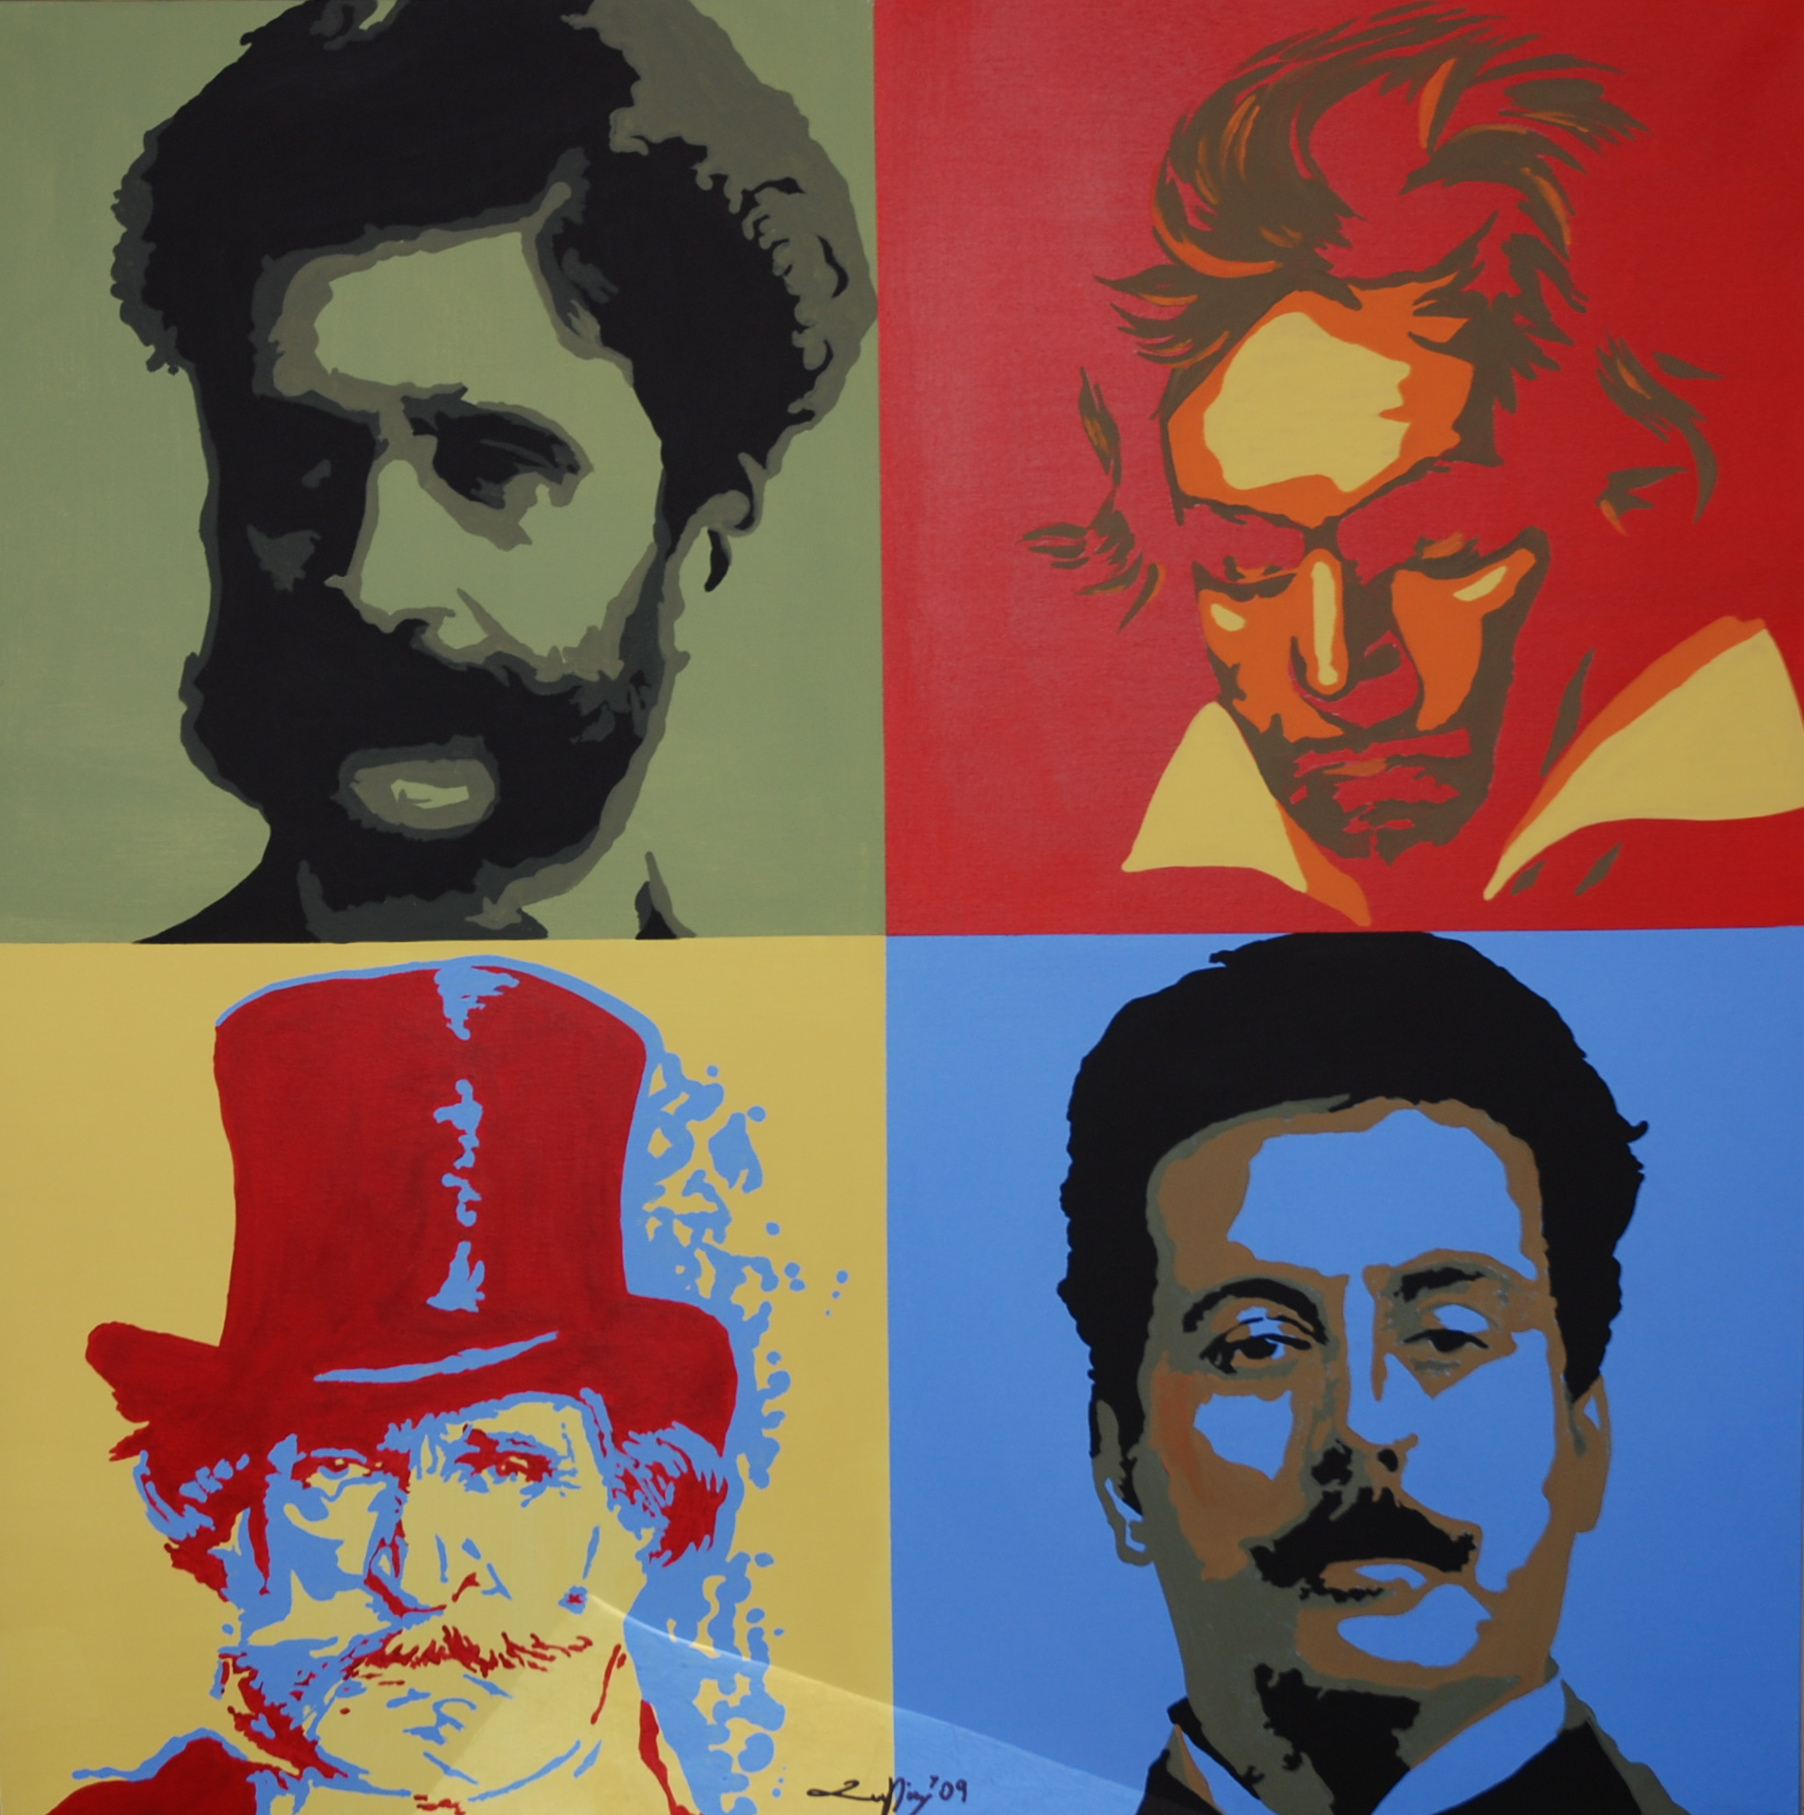 Puccini, Strauss, Beethoven and Verdi Portrait - Unique work piece